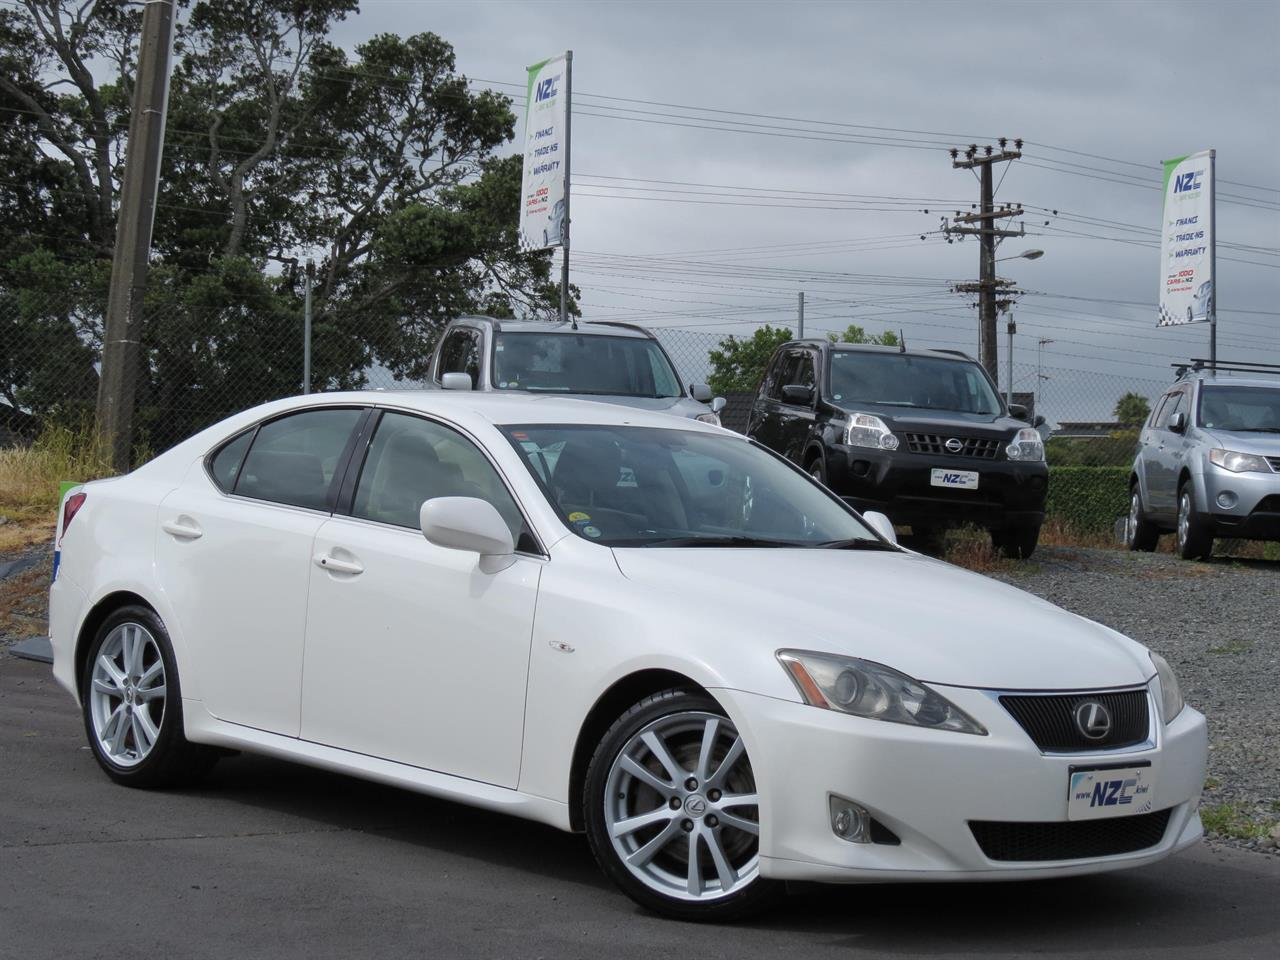 2005 Lexus IS 350